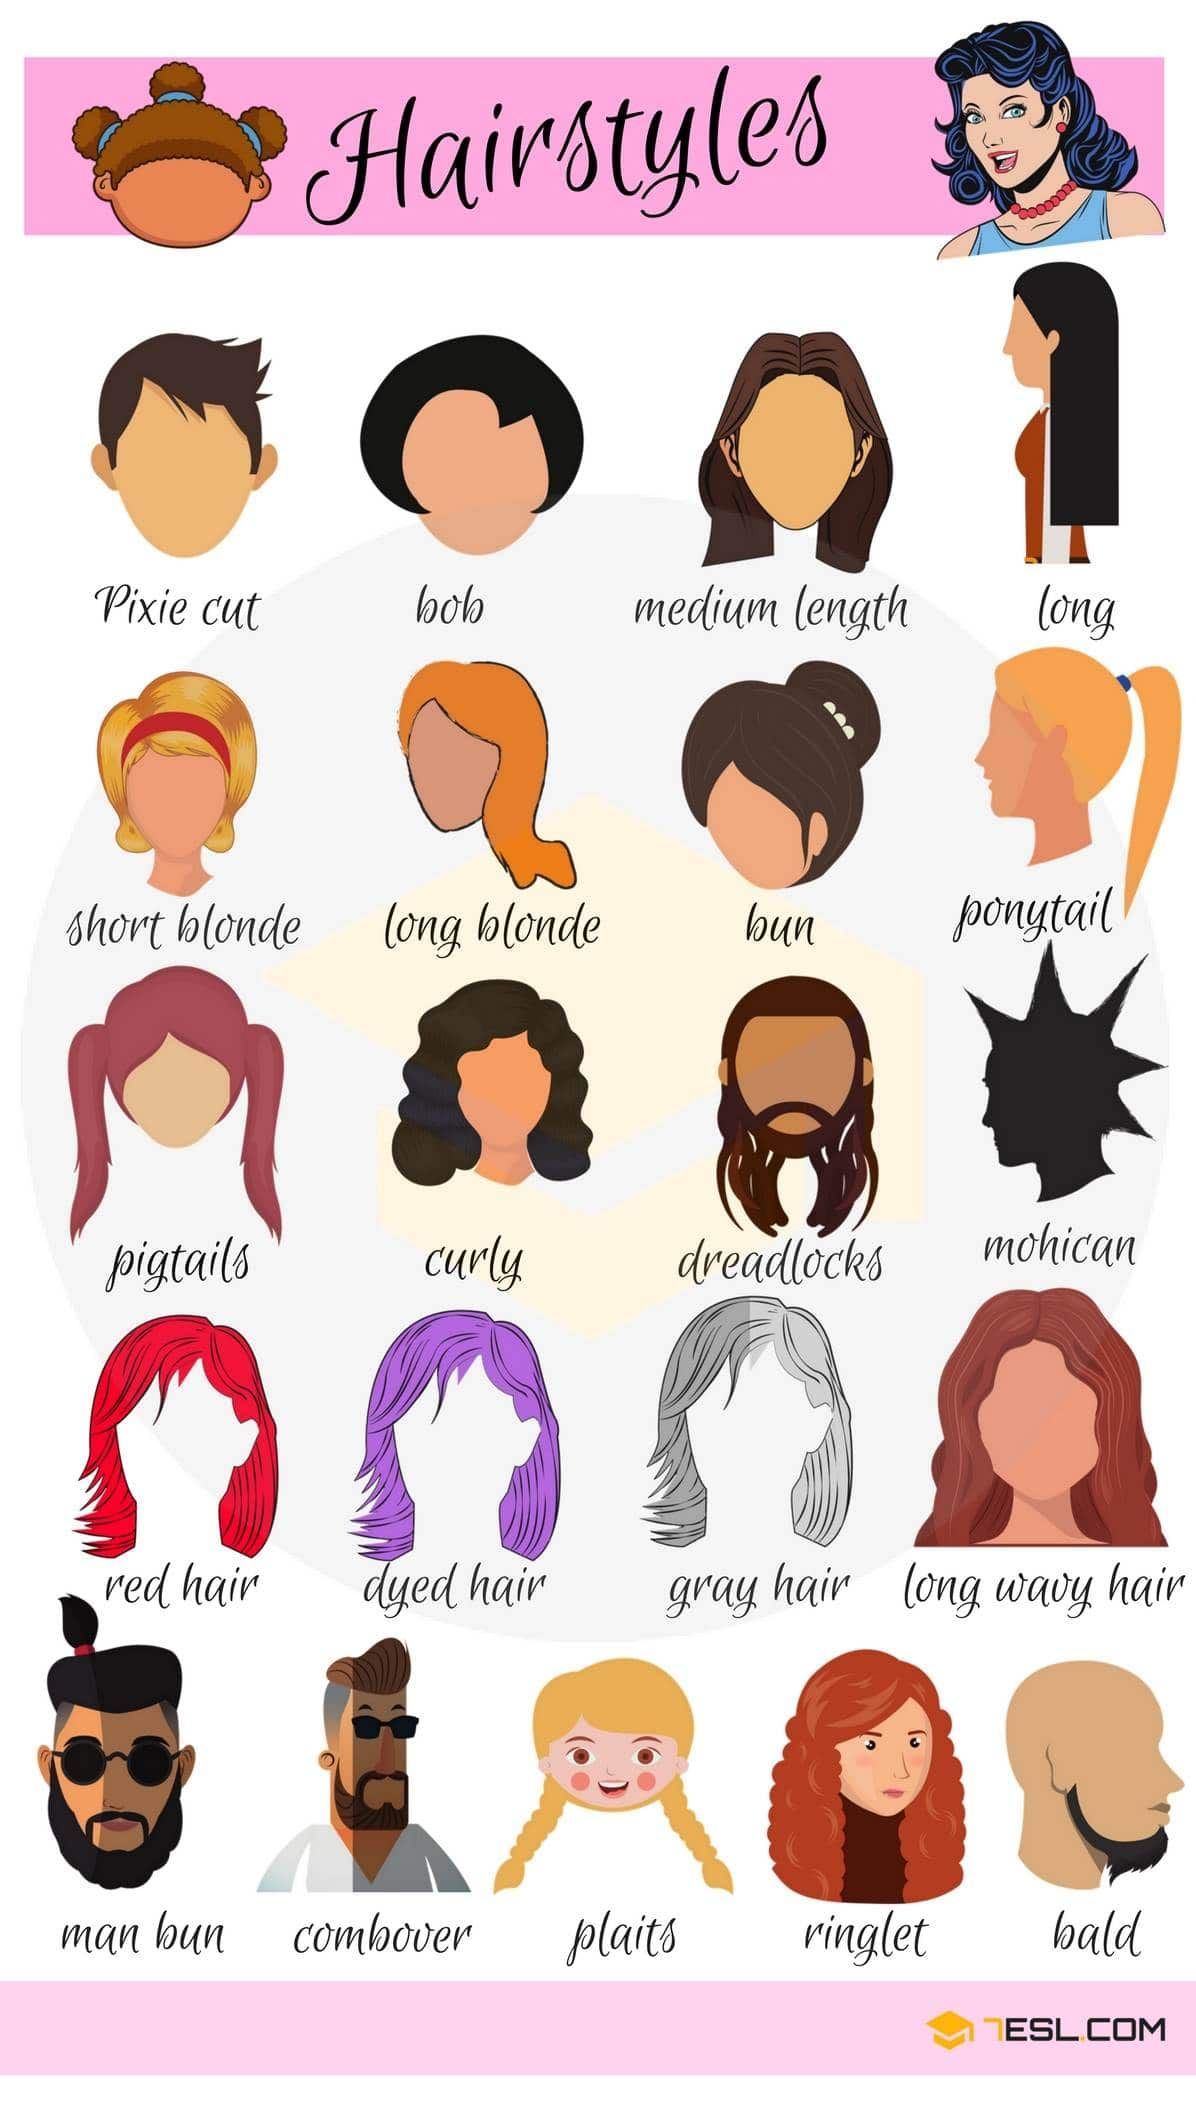 Hairstyle Vocabulary In English